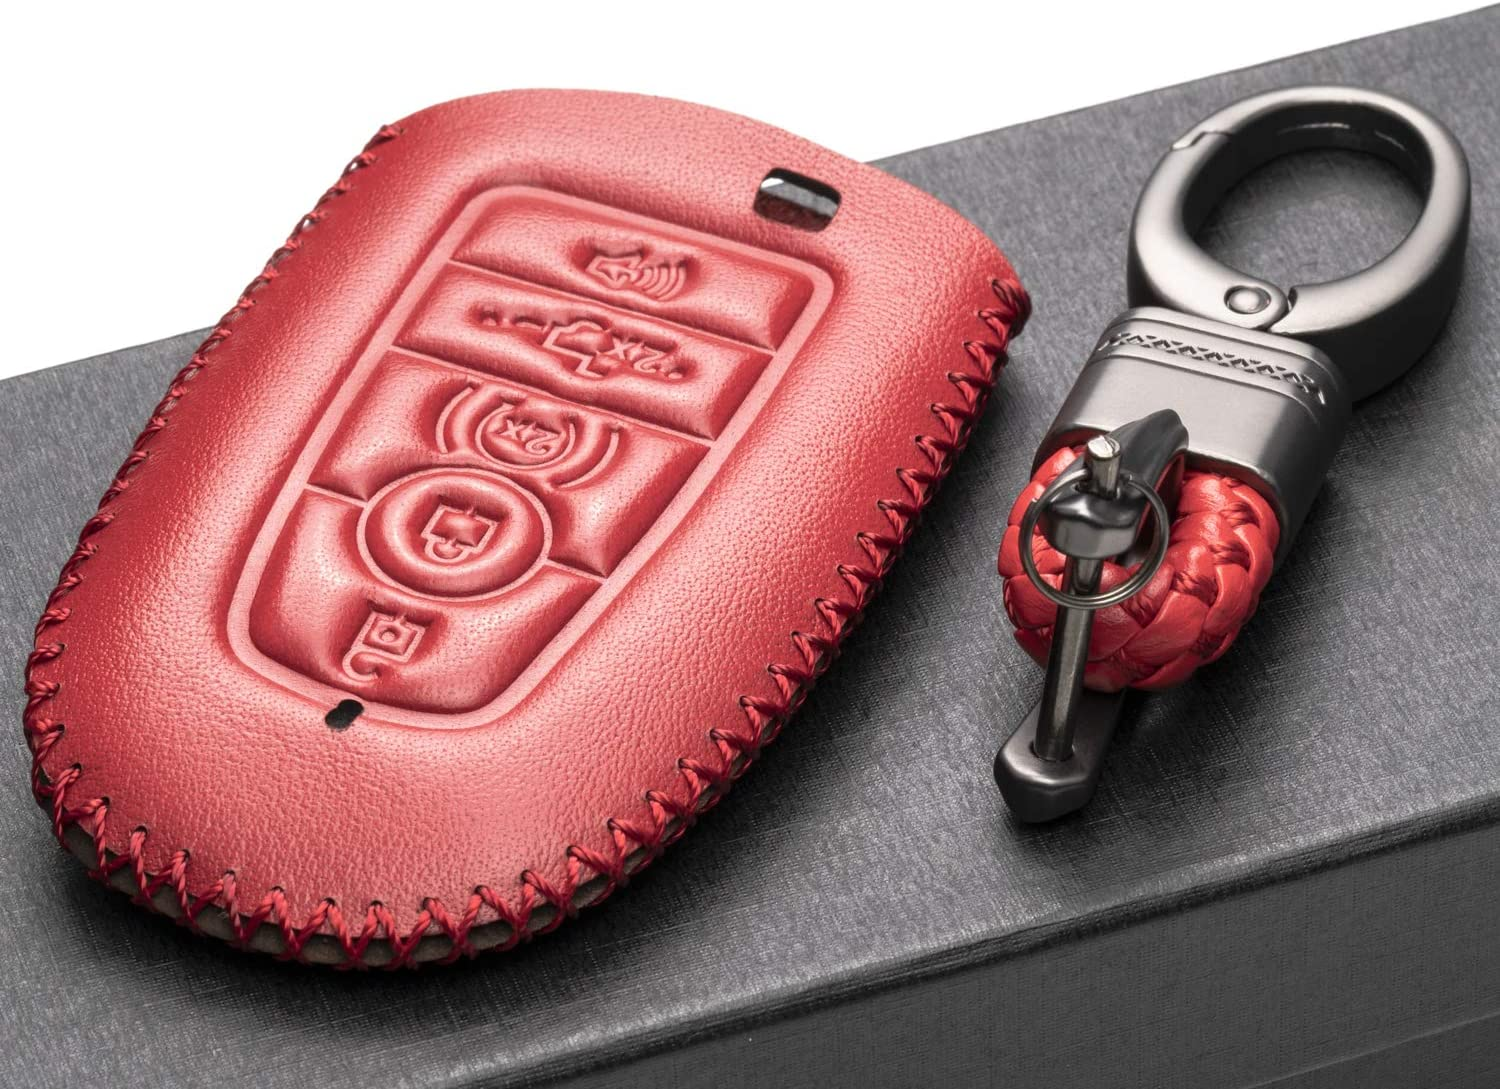 Explorer 4-Button, Red F-150 Escape Mustang and More Models Vitodeco Genuine Leather Smart Key Keyless Remote Entry Fob Case Cover with Key Chain for 2019 Ford Fusion Edge